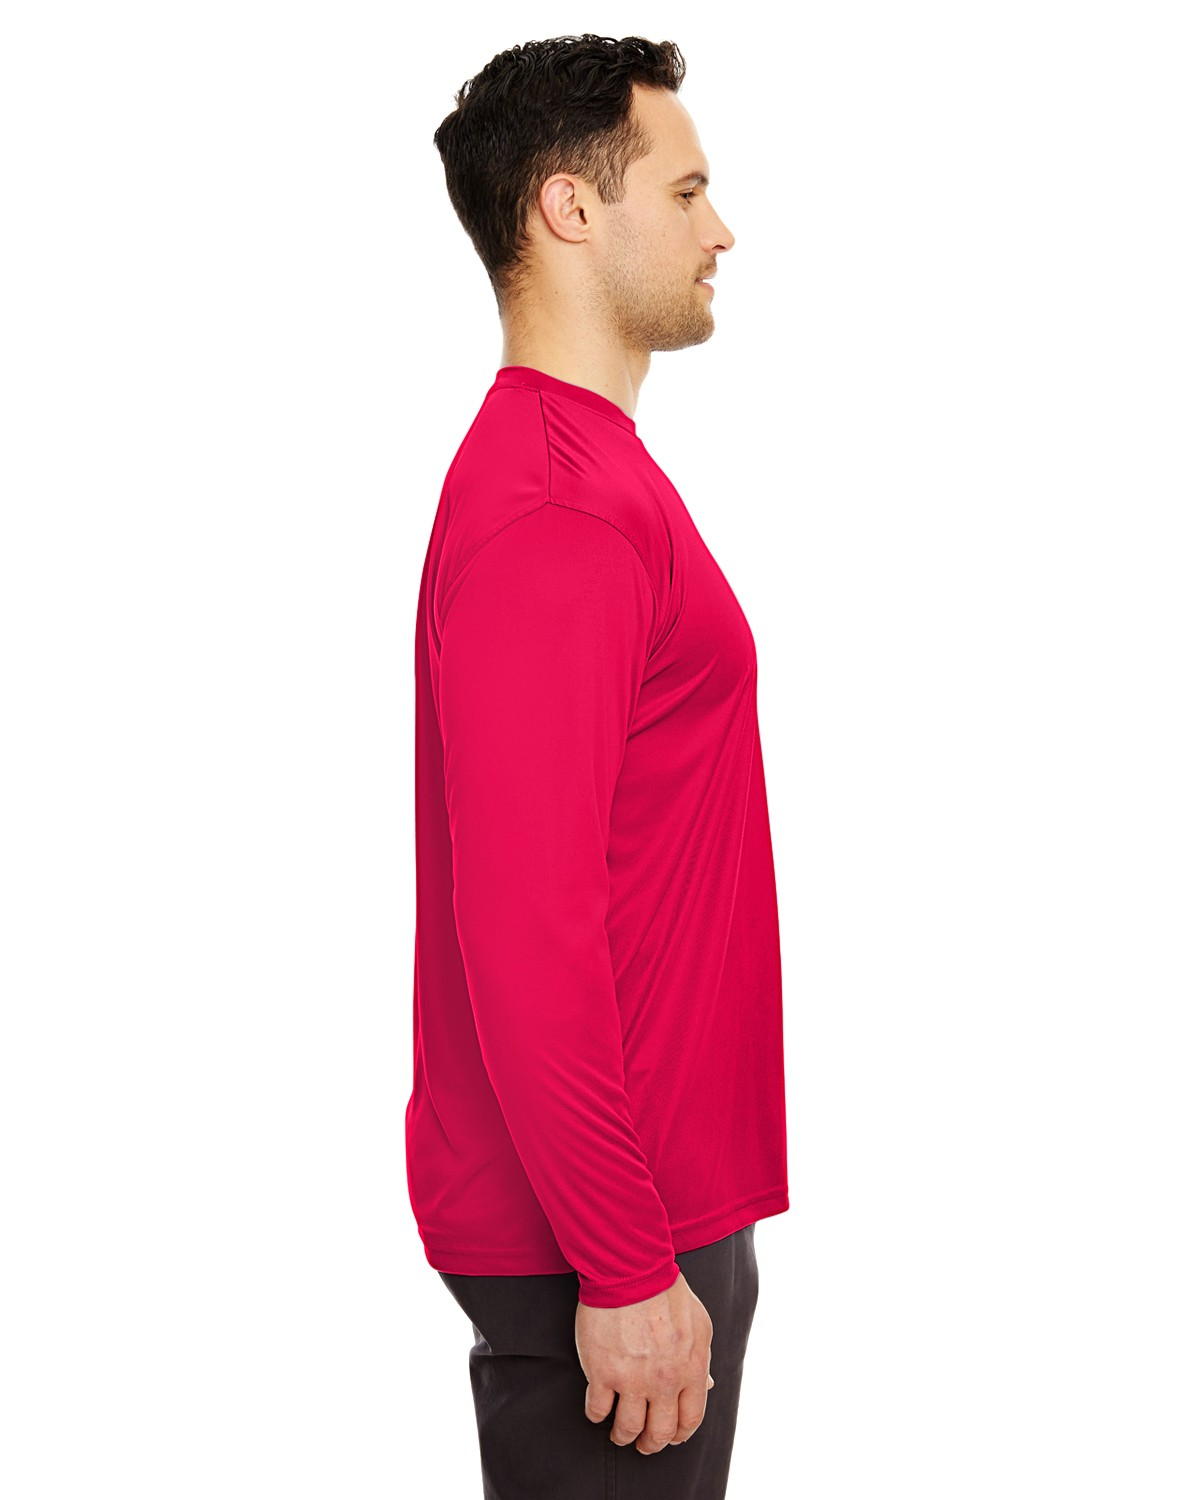 8422 UltraClub RED